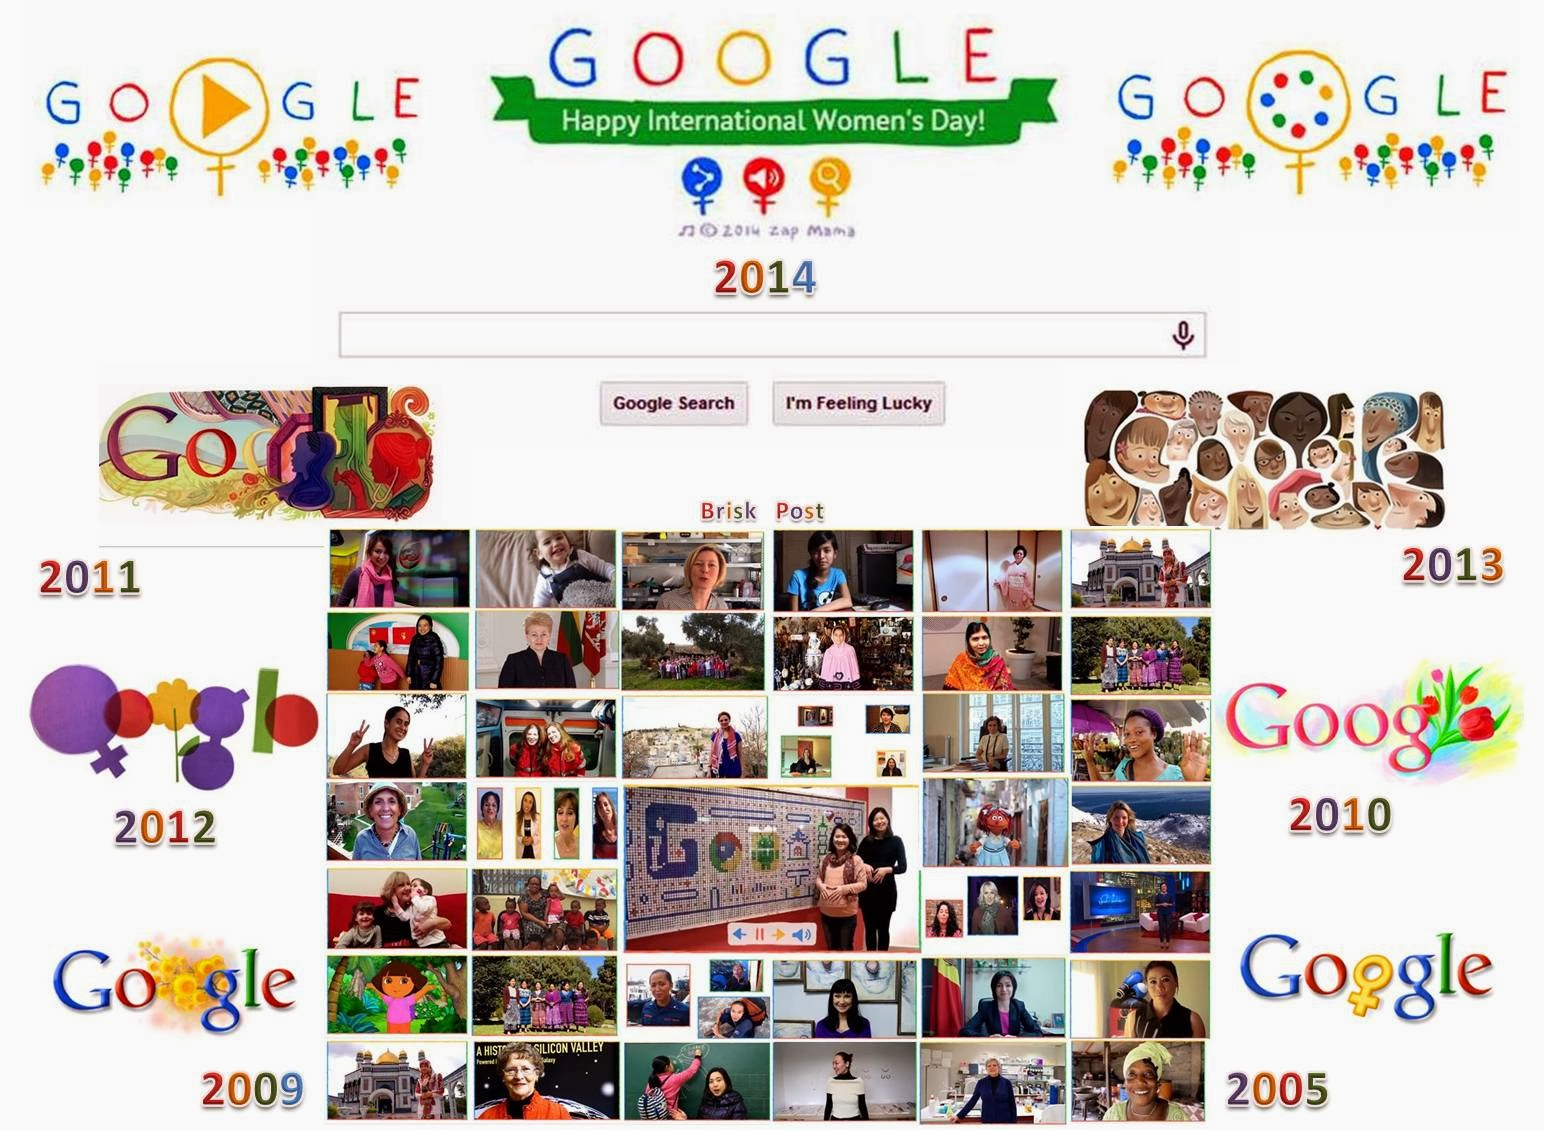 Creative Google Doodle for International Women's Day 2005 to  2014